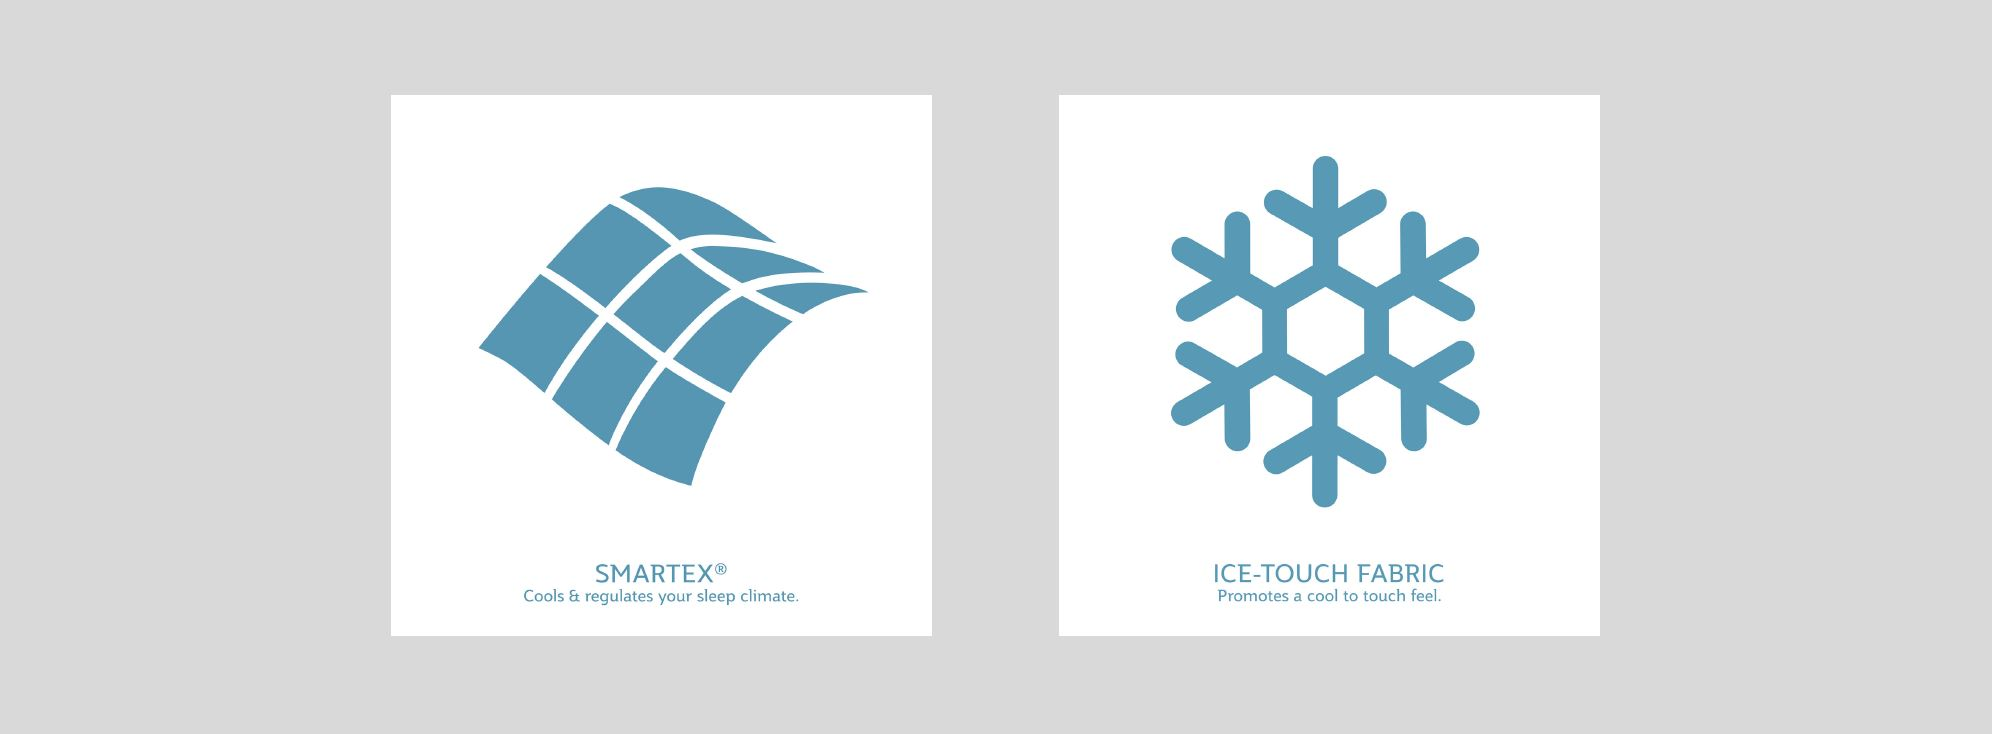 smartex and icetouch technology